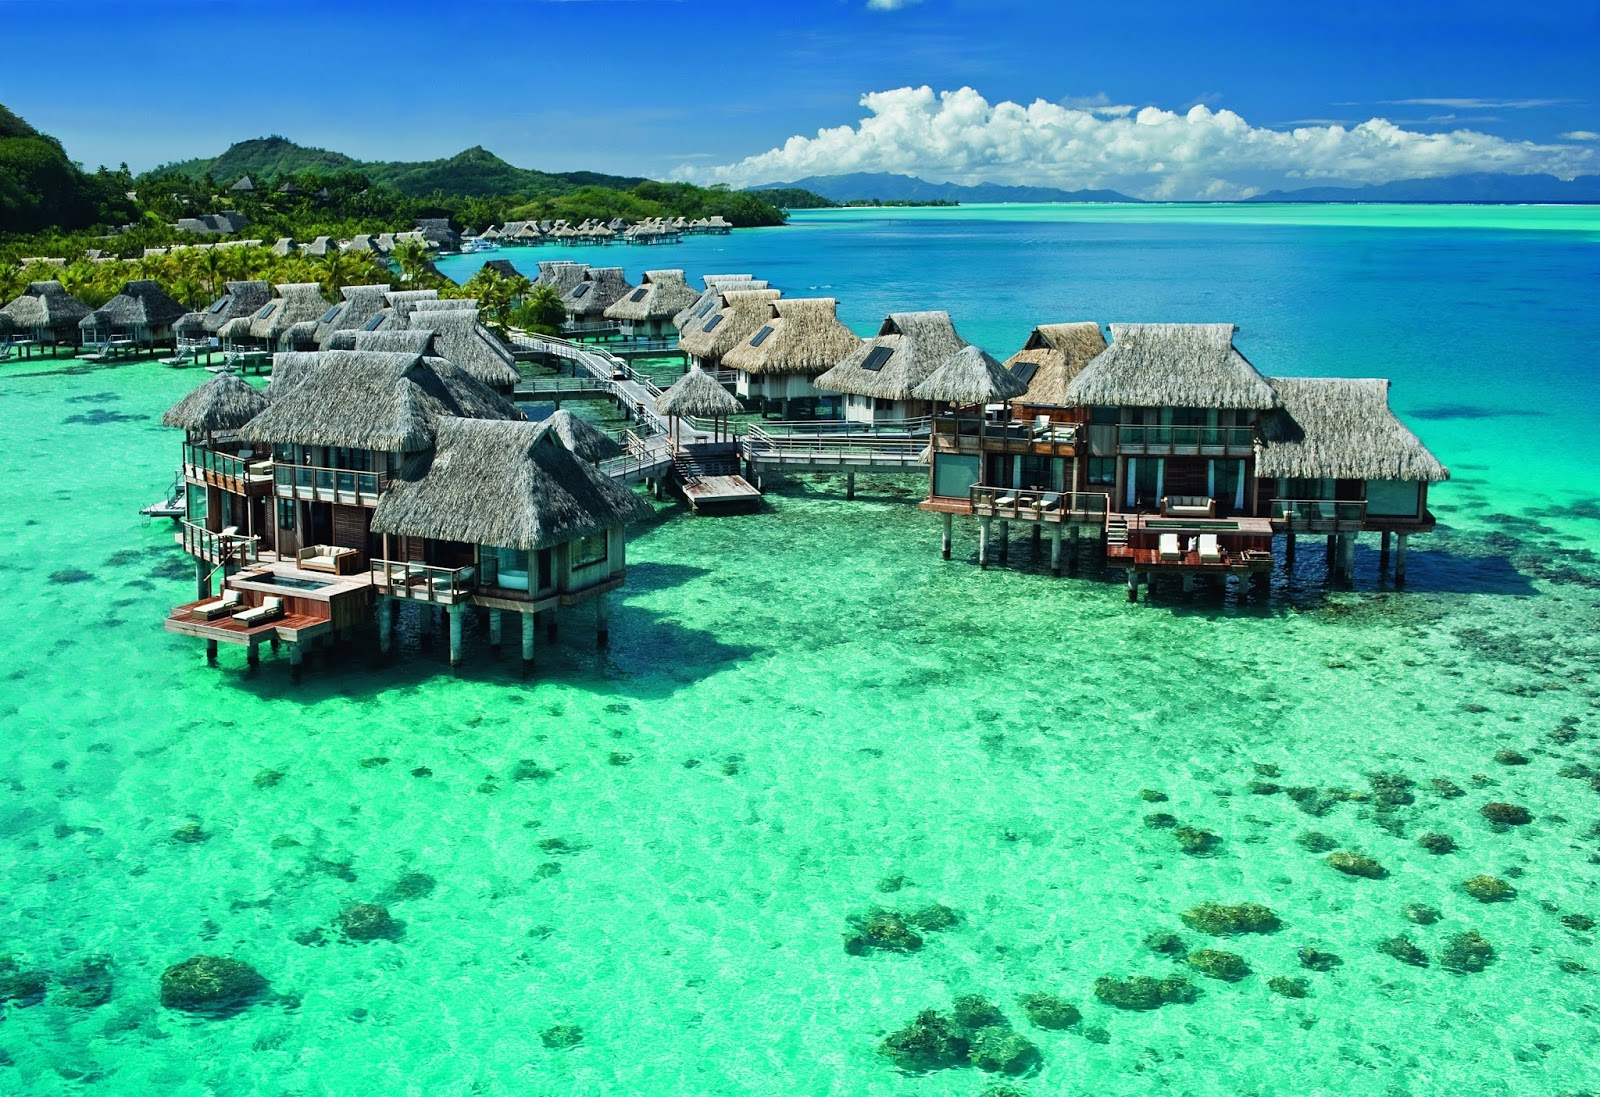 Most Of The Tourist Destinations Are Aqua Centric However It Is Possible To Visit Attractions On Land Such As Wwii Cannons Air Tahiti Has Five Or Six